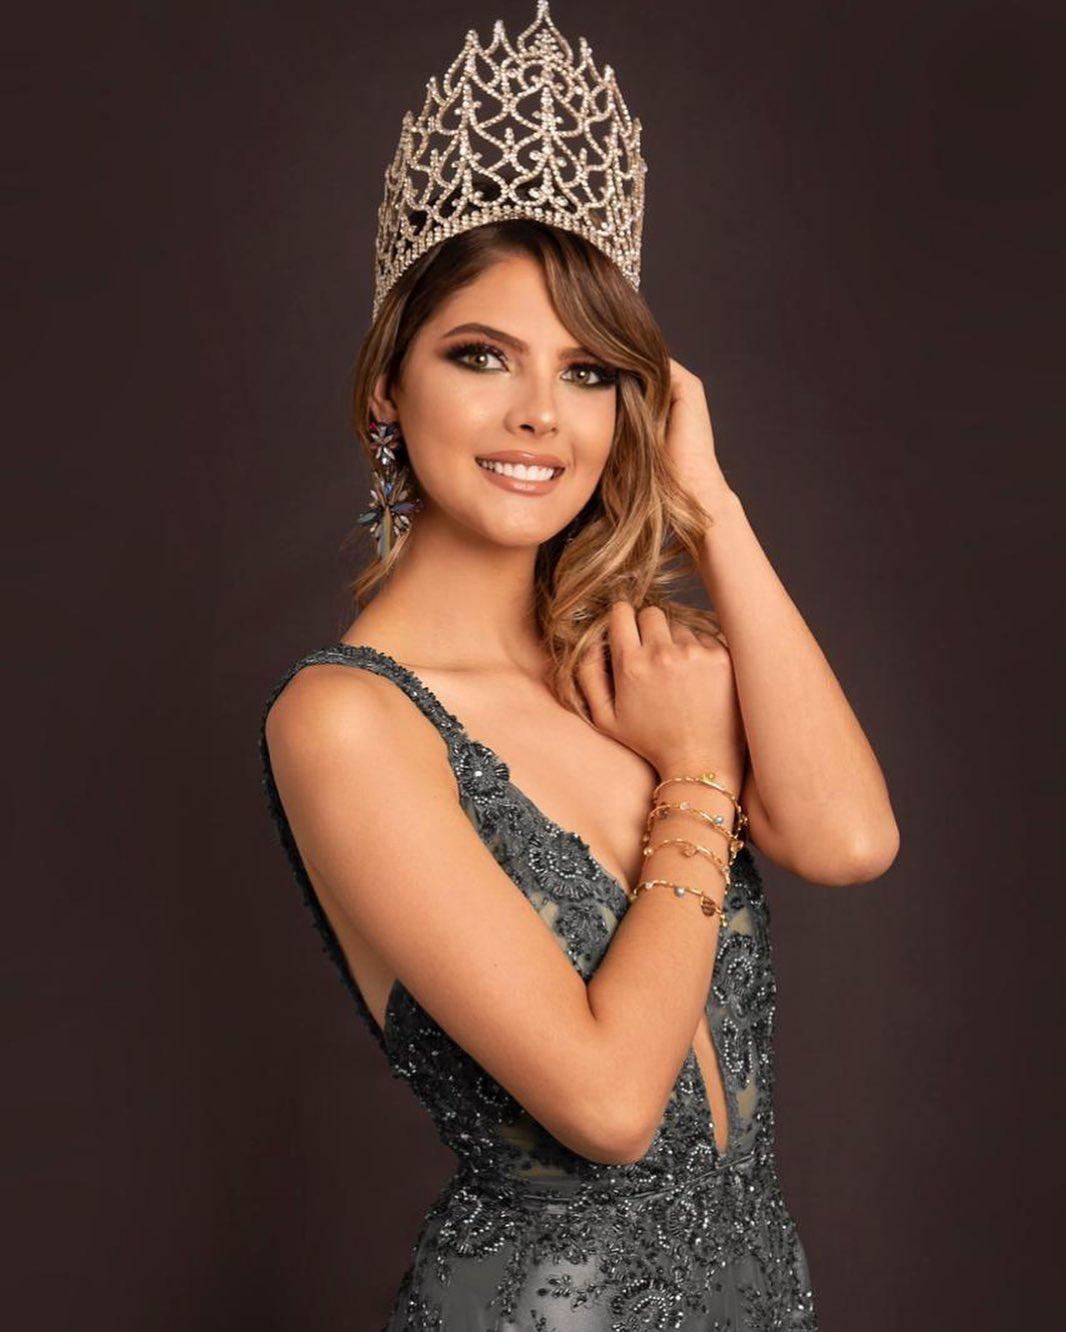 natalia manriquez, miss grand colombia 2020. 64312810